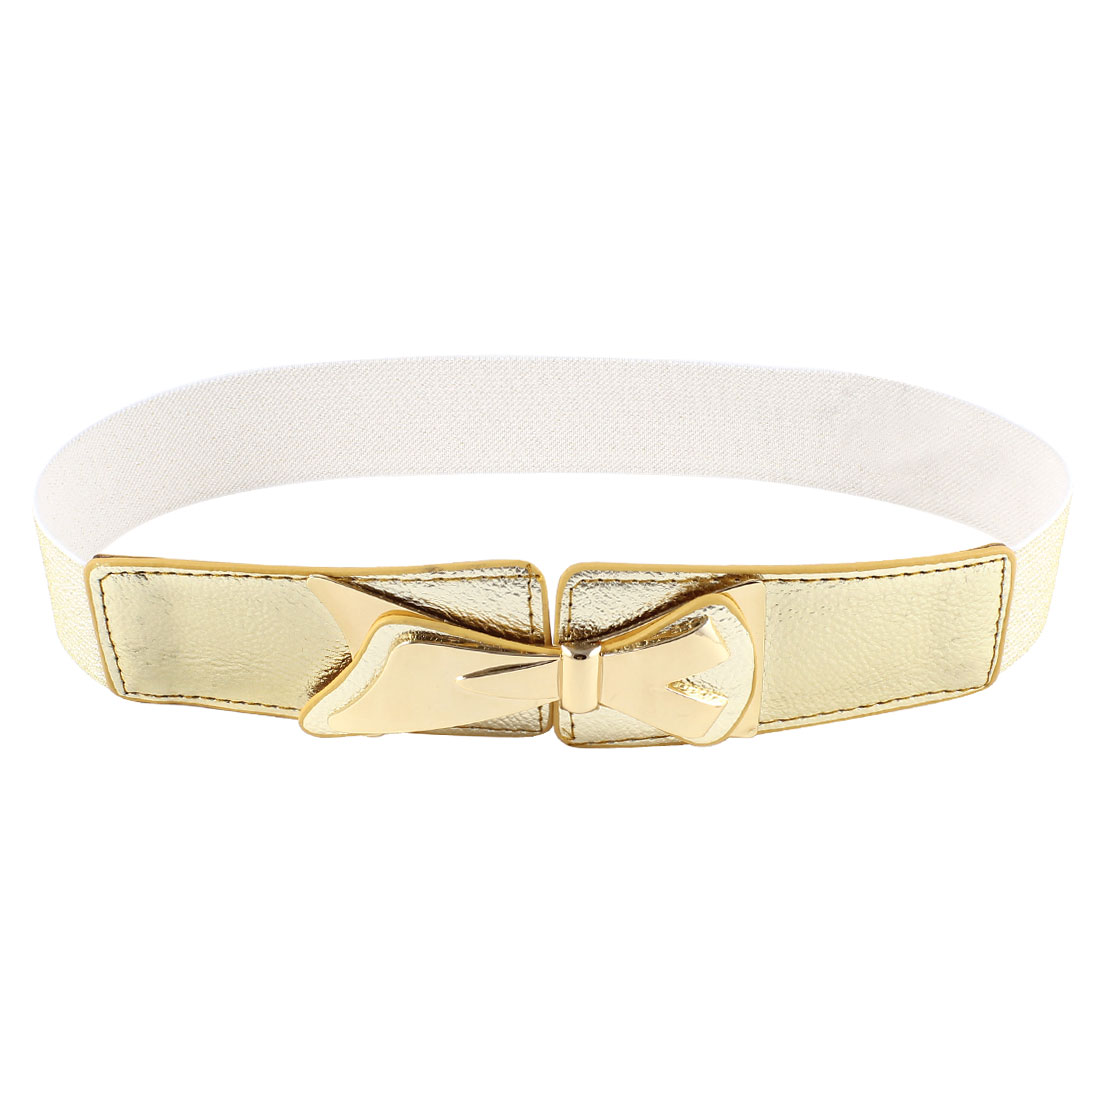 Gold Tone Bowtie Detail Textured Elastic Cinch Waist Belt for Women Woman